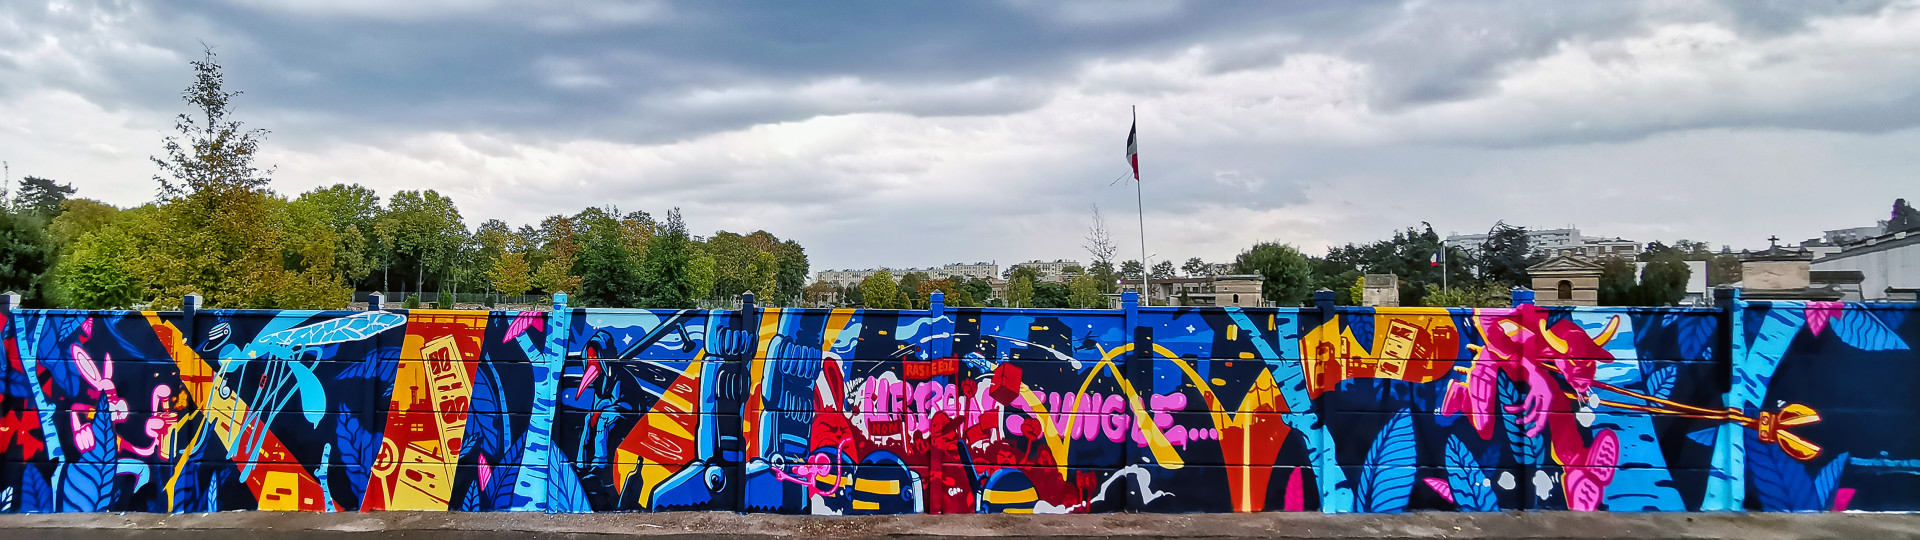 fresque bagneux sly